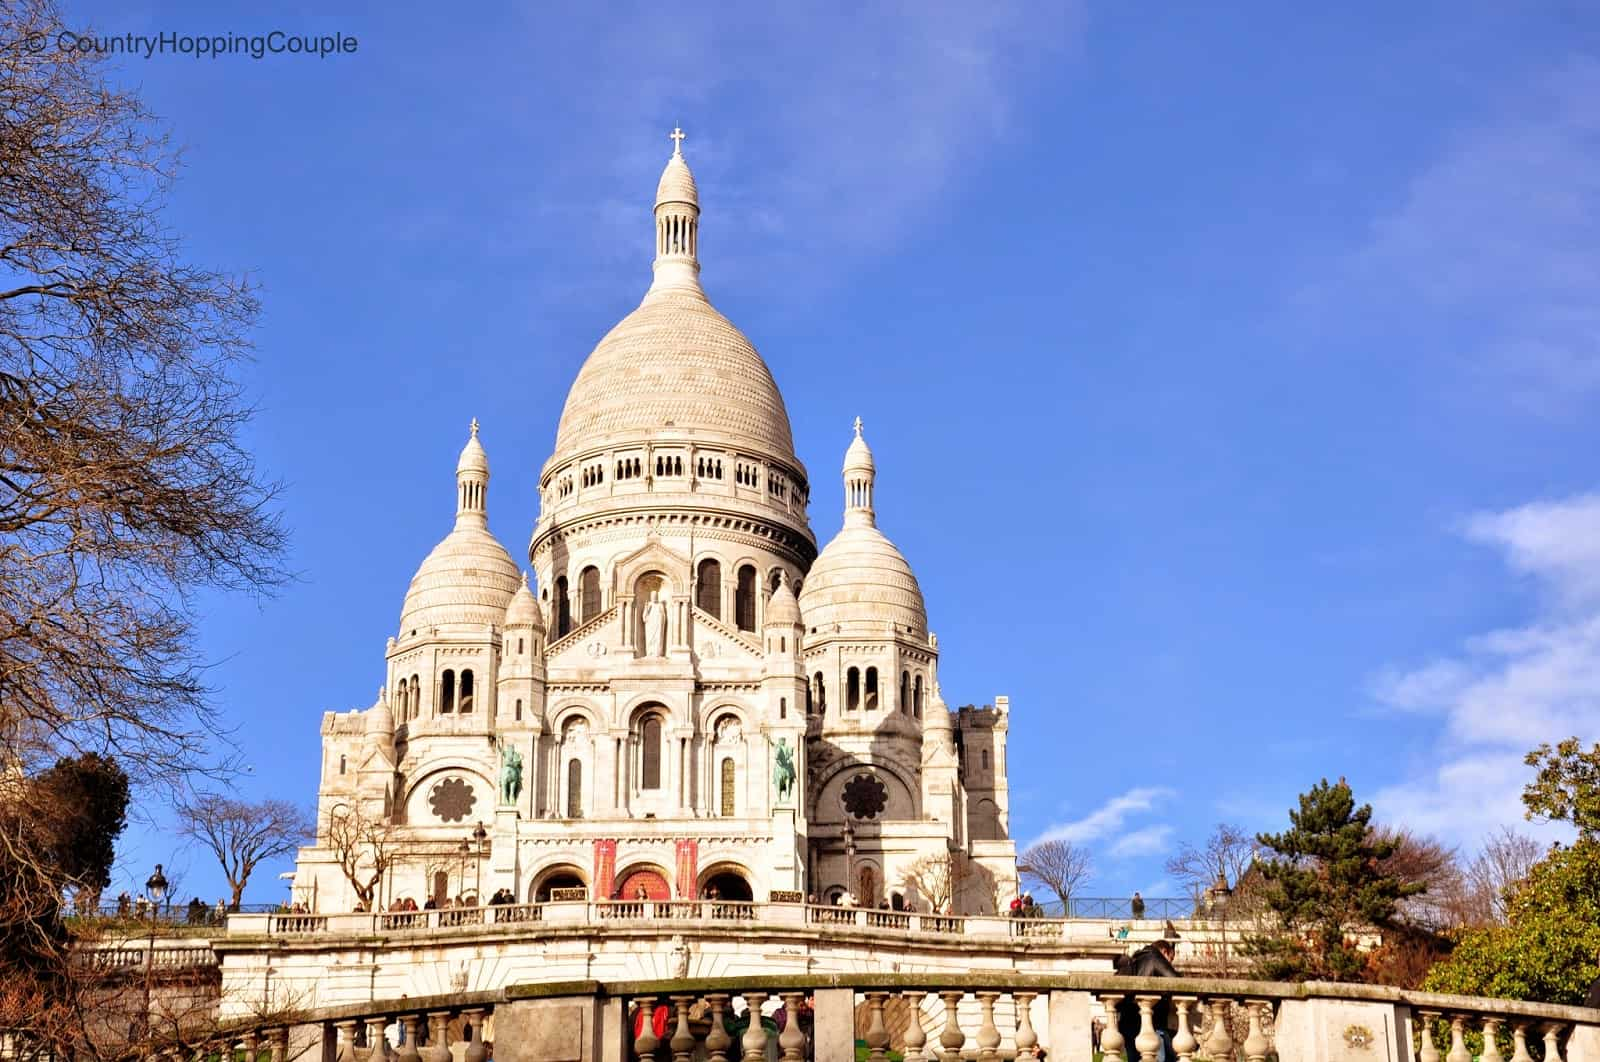 Monument Monday: Basilica of the Sacré Coeur